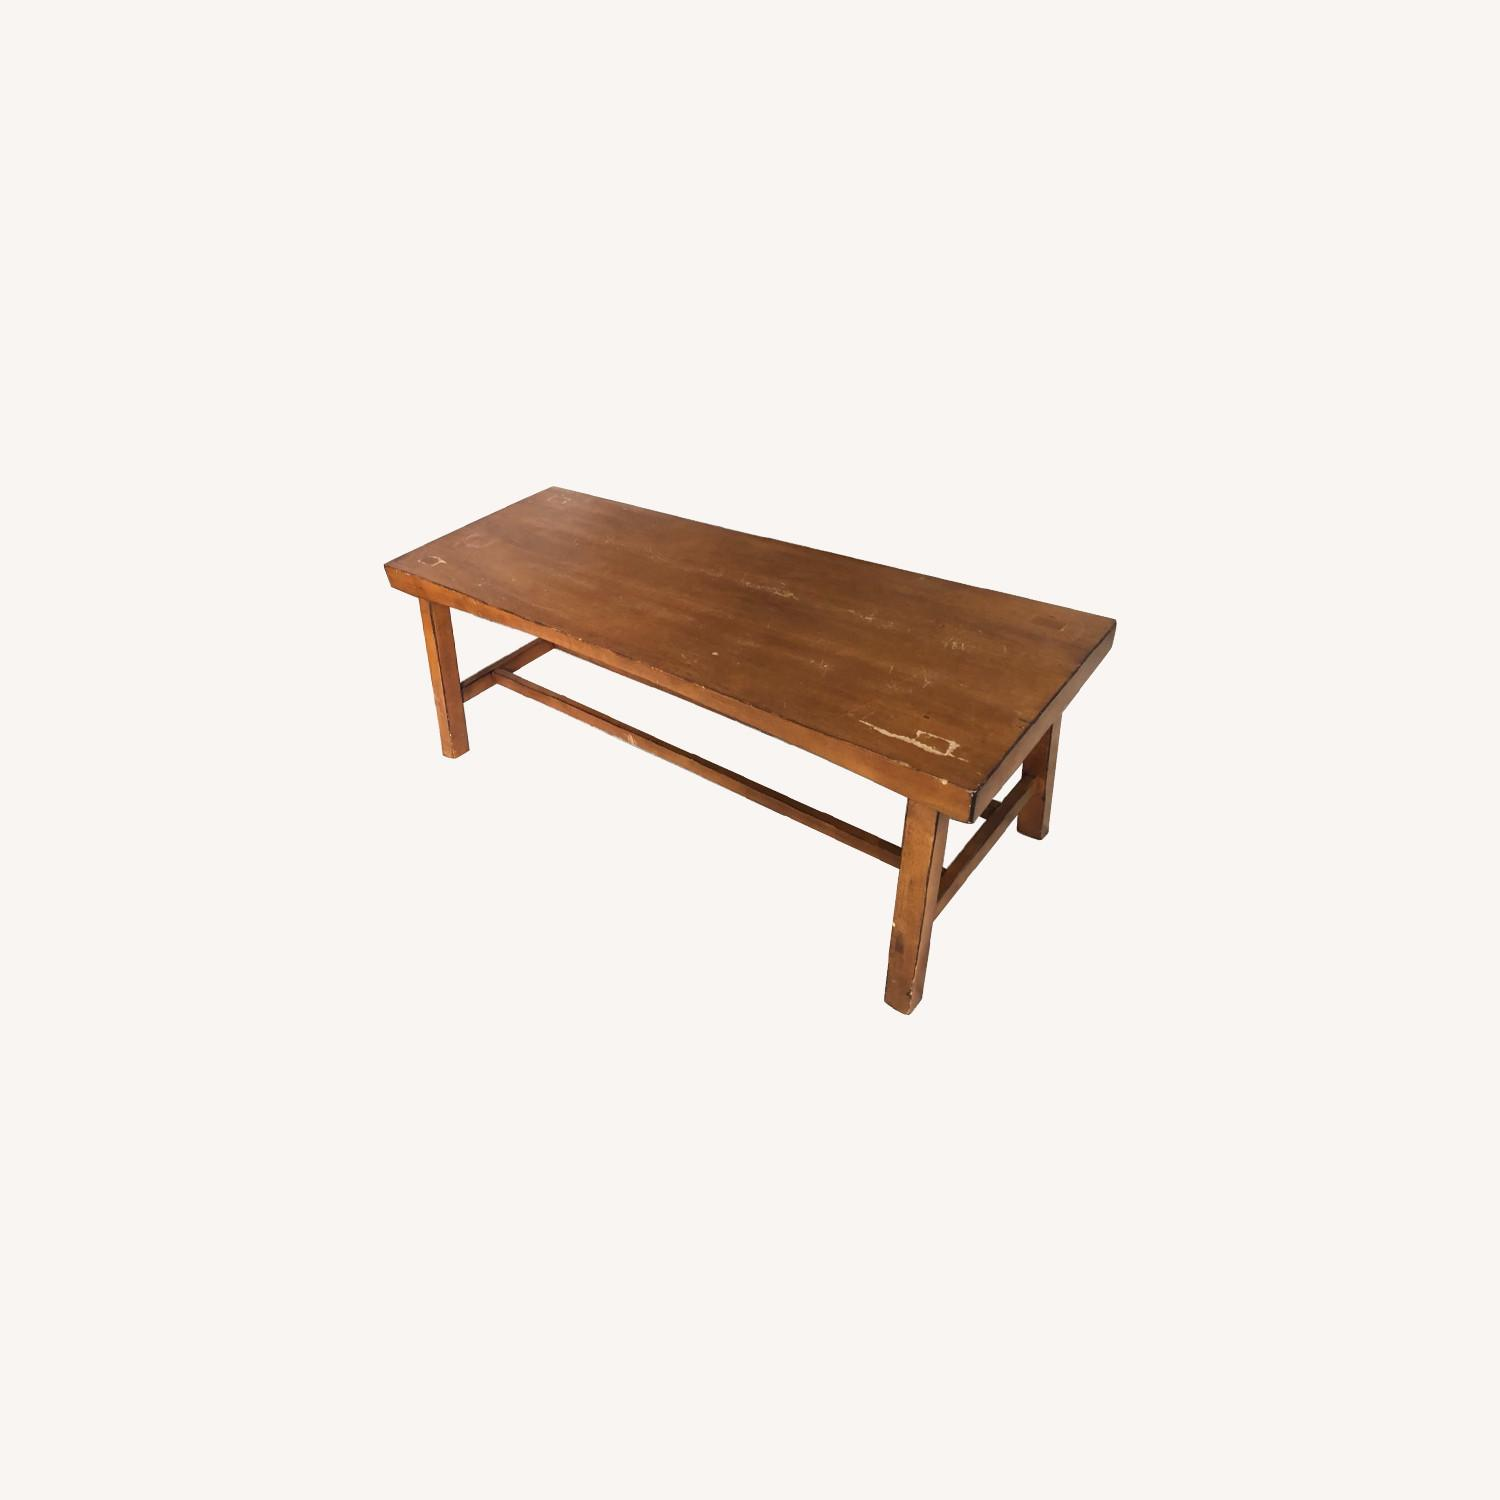 Pottery Barn Tibetan Coffee Table - image-9